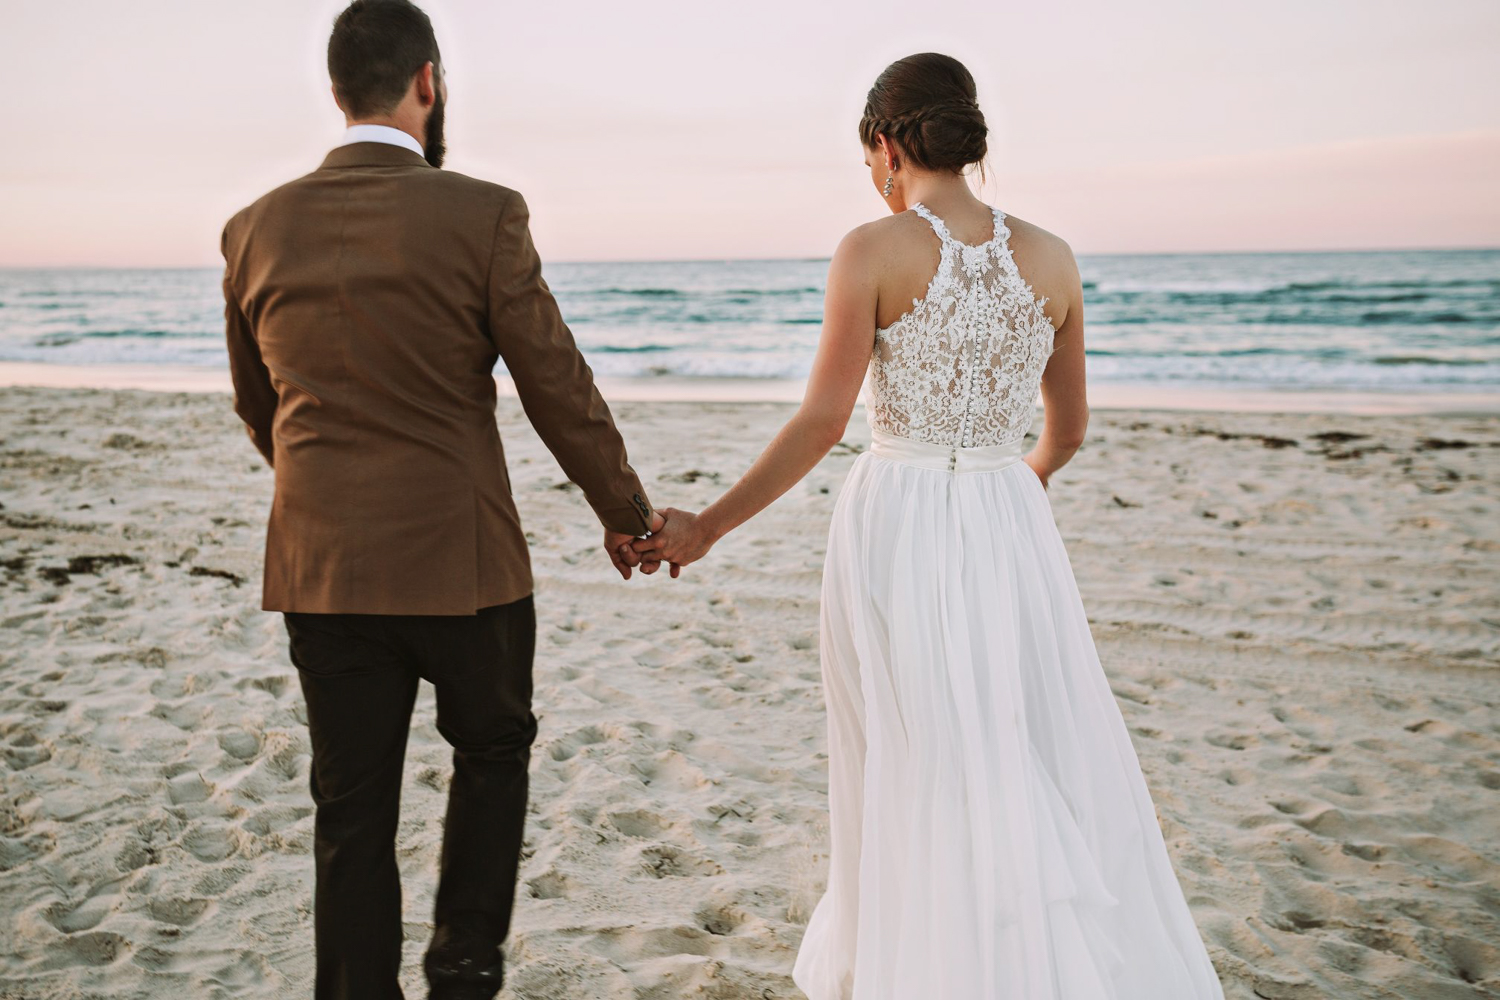 Couple walks towards the turquoise ocean after getting married at point lookoutcouple walks towards the turquoise ocean after getting married at point lookout.